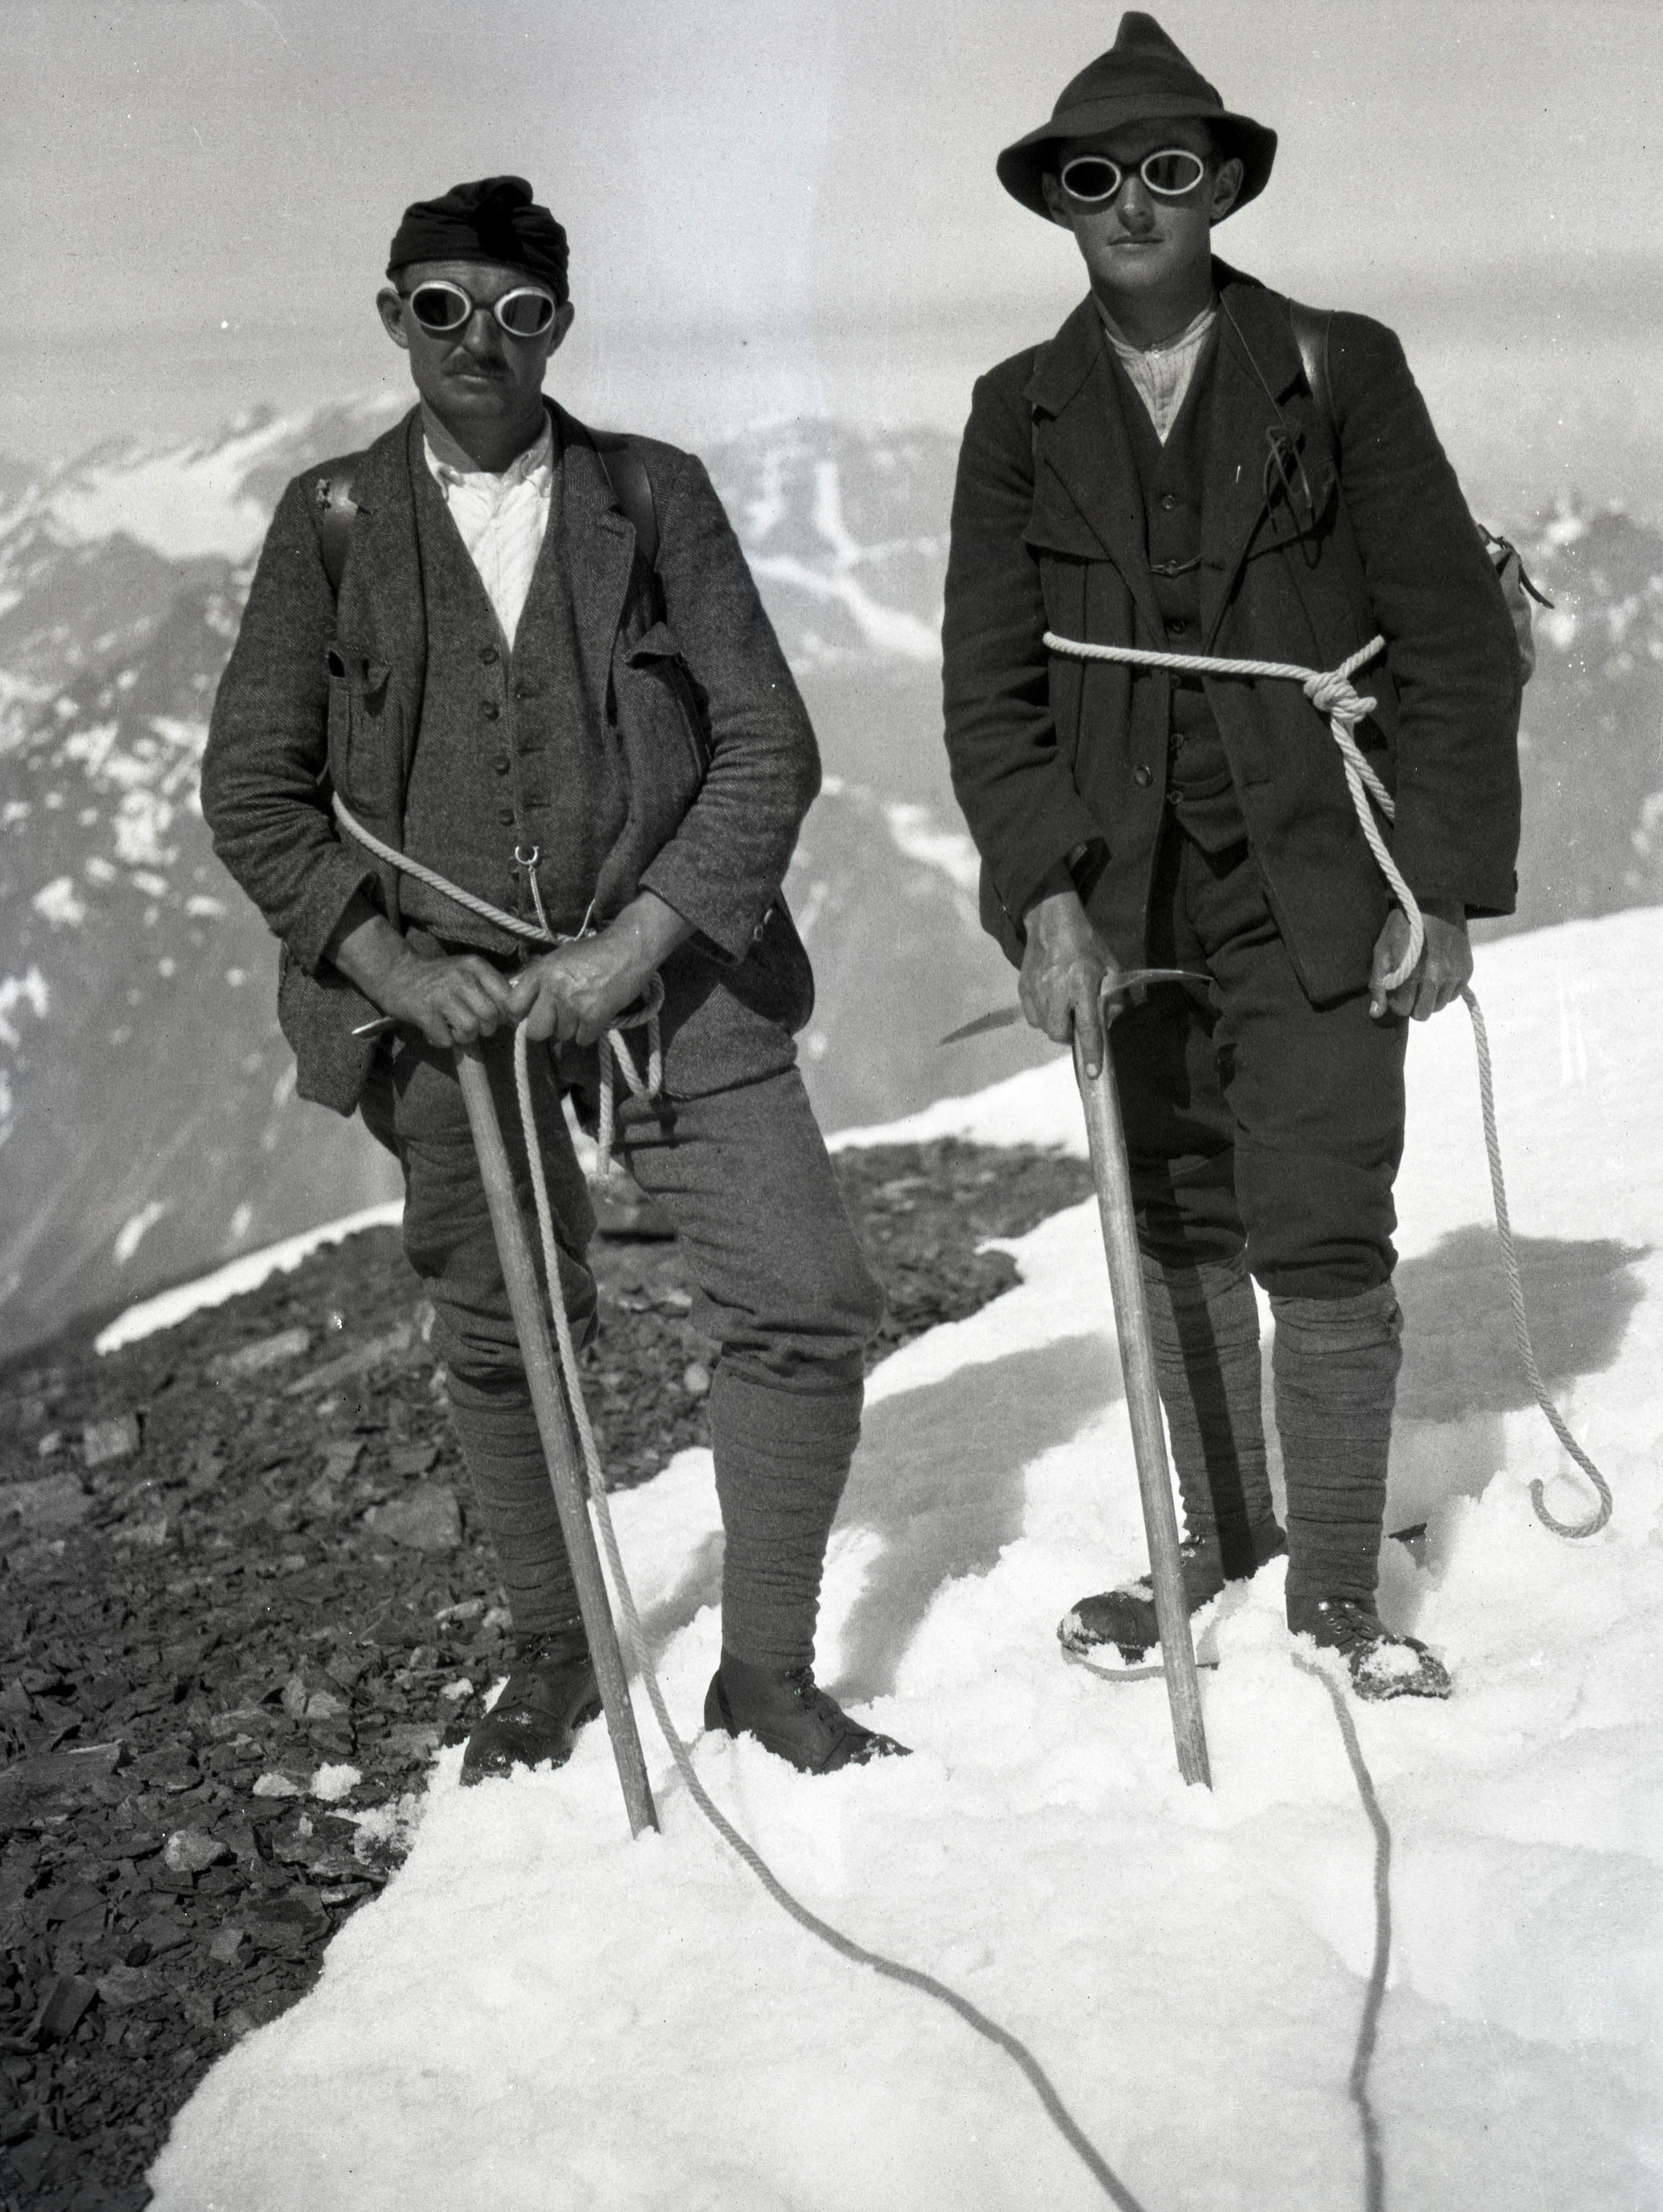 Hemp rope, ice axes and glacier goggles. These two climbers are also wearing puttees (leg wraps).